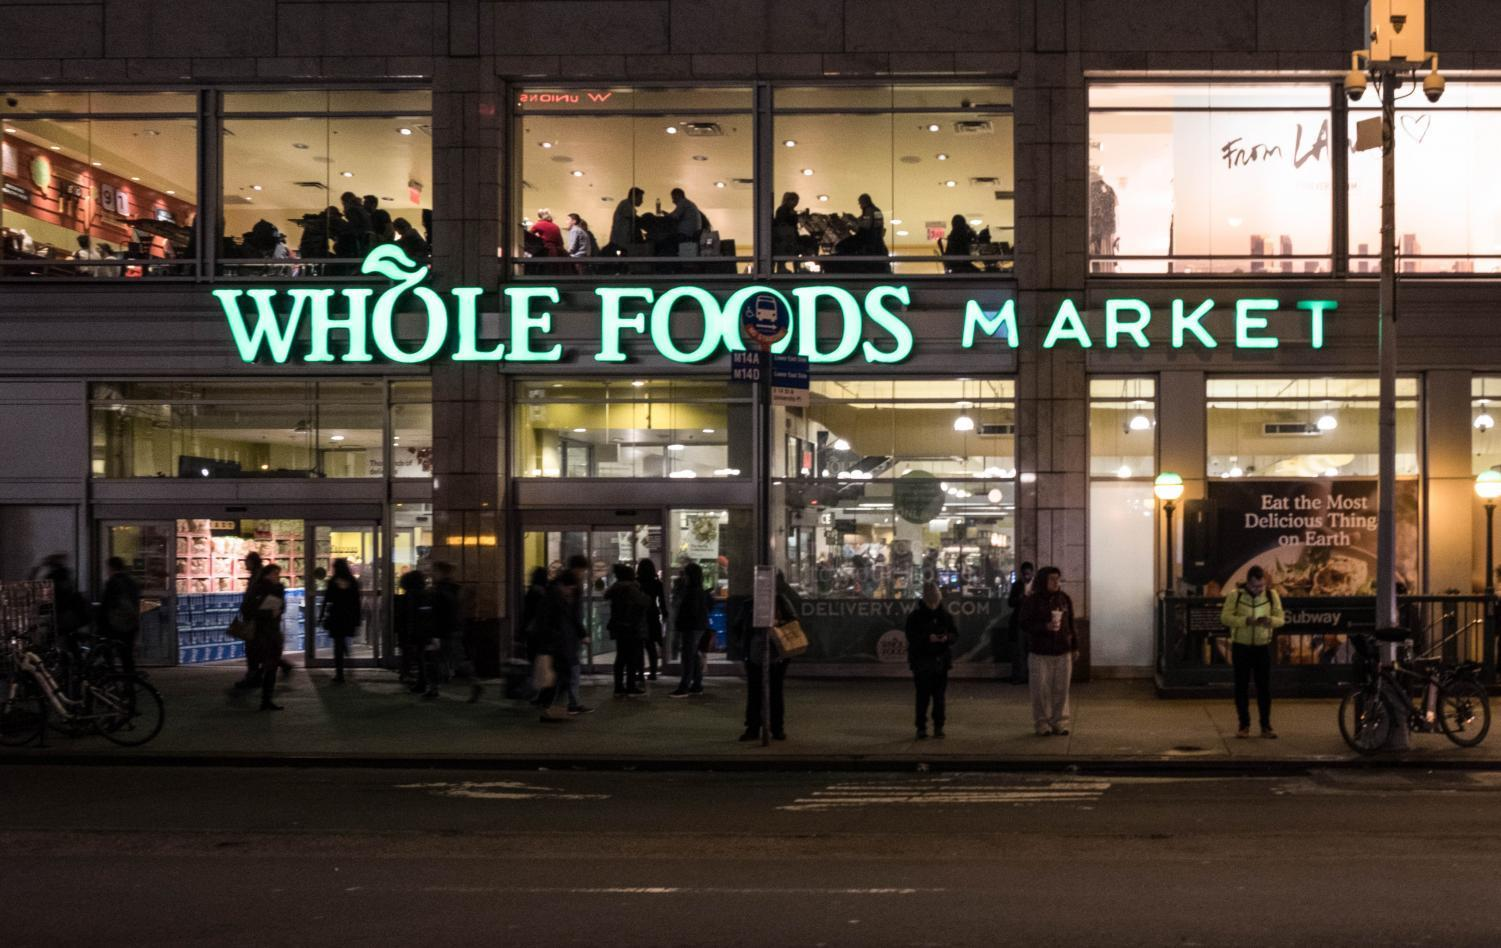 Whole Foods Market on Union Square is a traditional grocery store that offers the option to shop for groceries online through Amazon Prime Now.